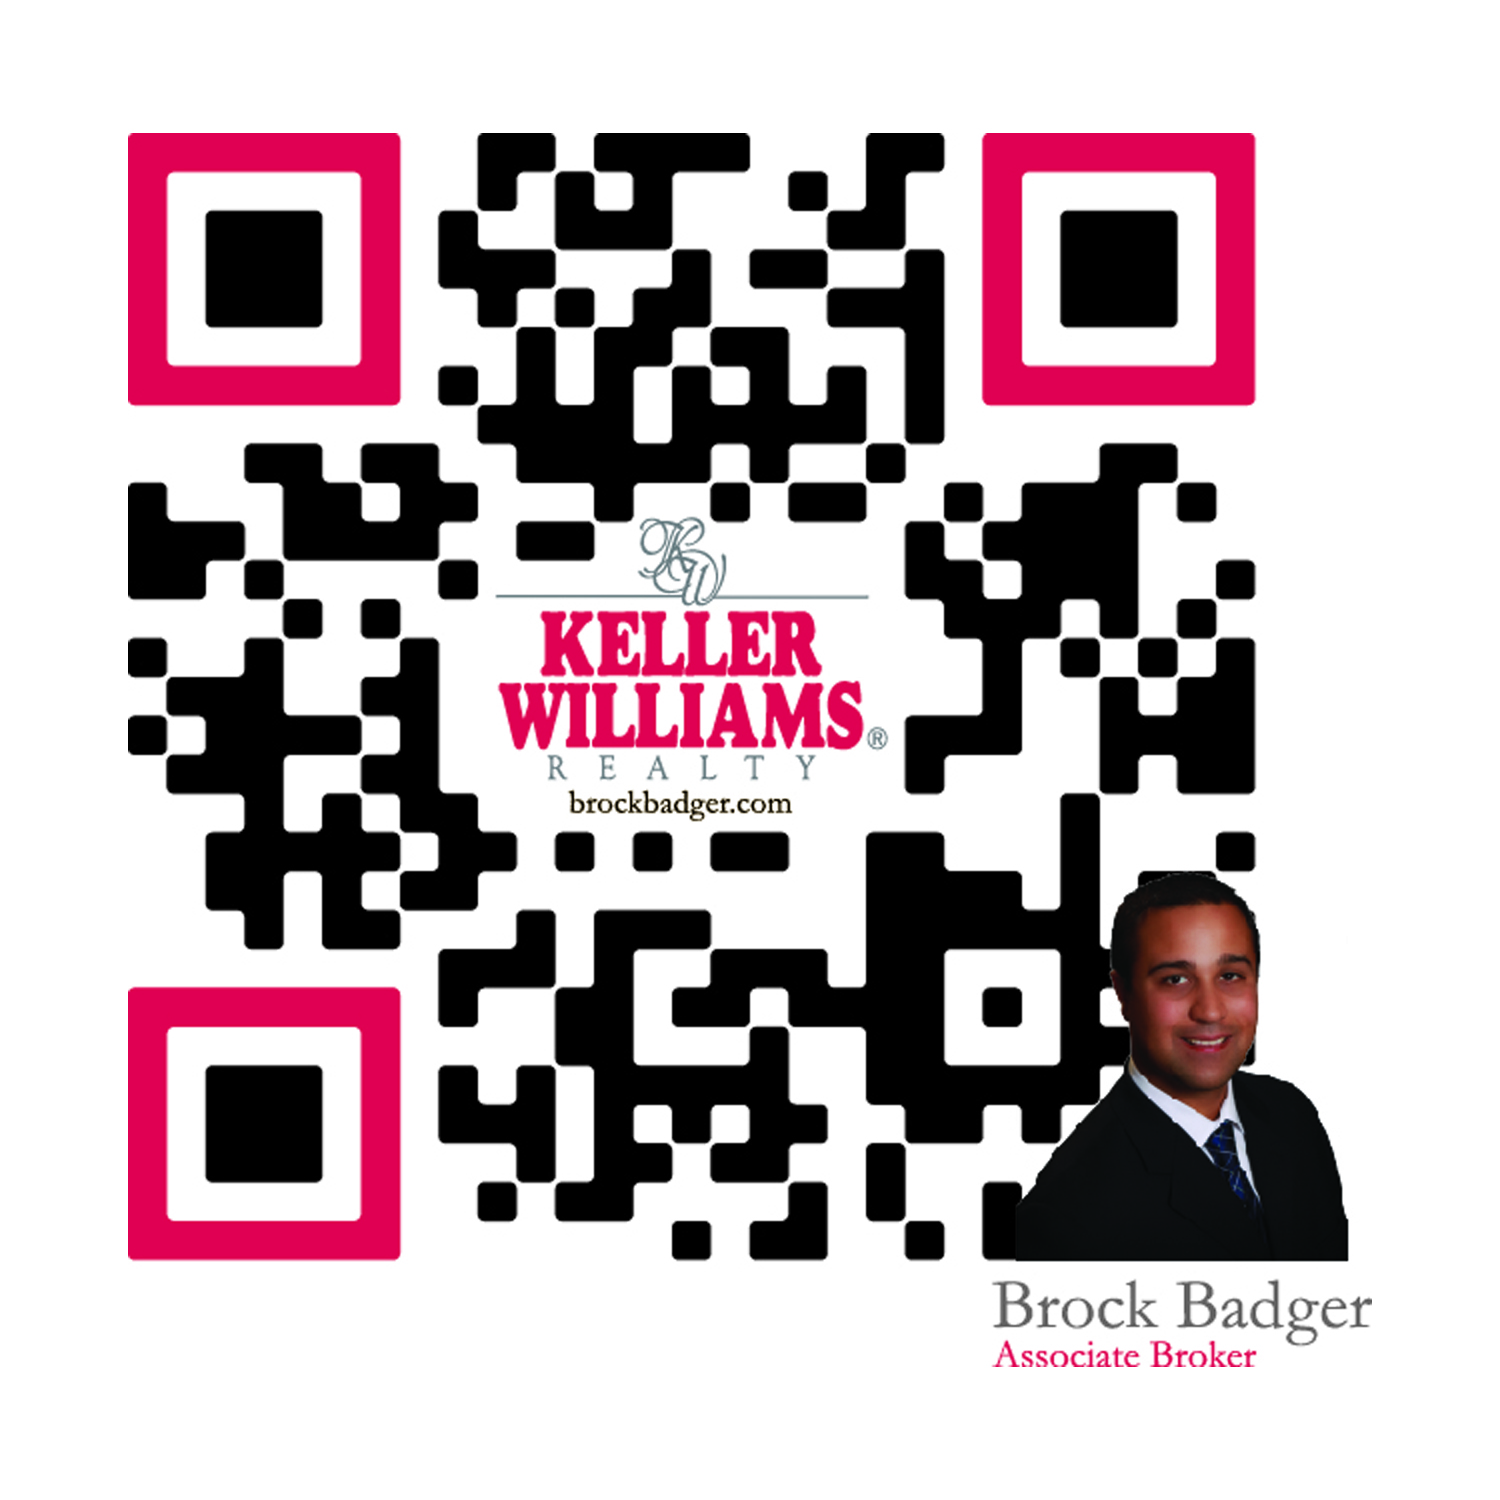 http://www.agentbizzup.com/account/acc_files/10000/6671/image/BrockBadger-KellerWilliams_QRcode-1.jpg